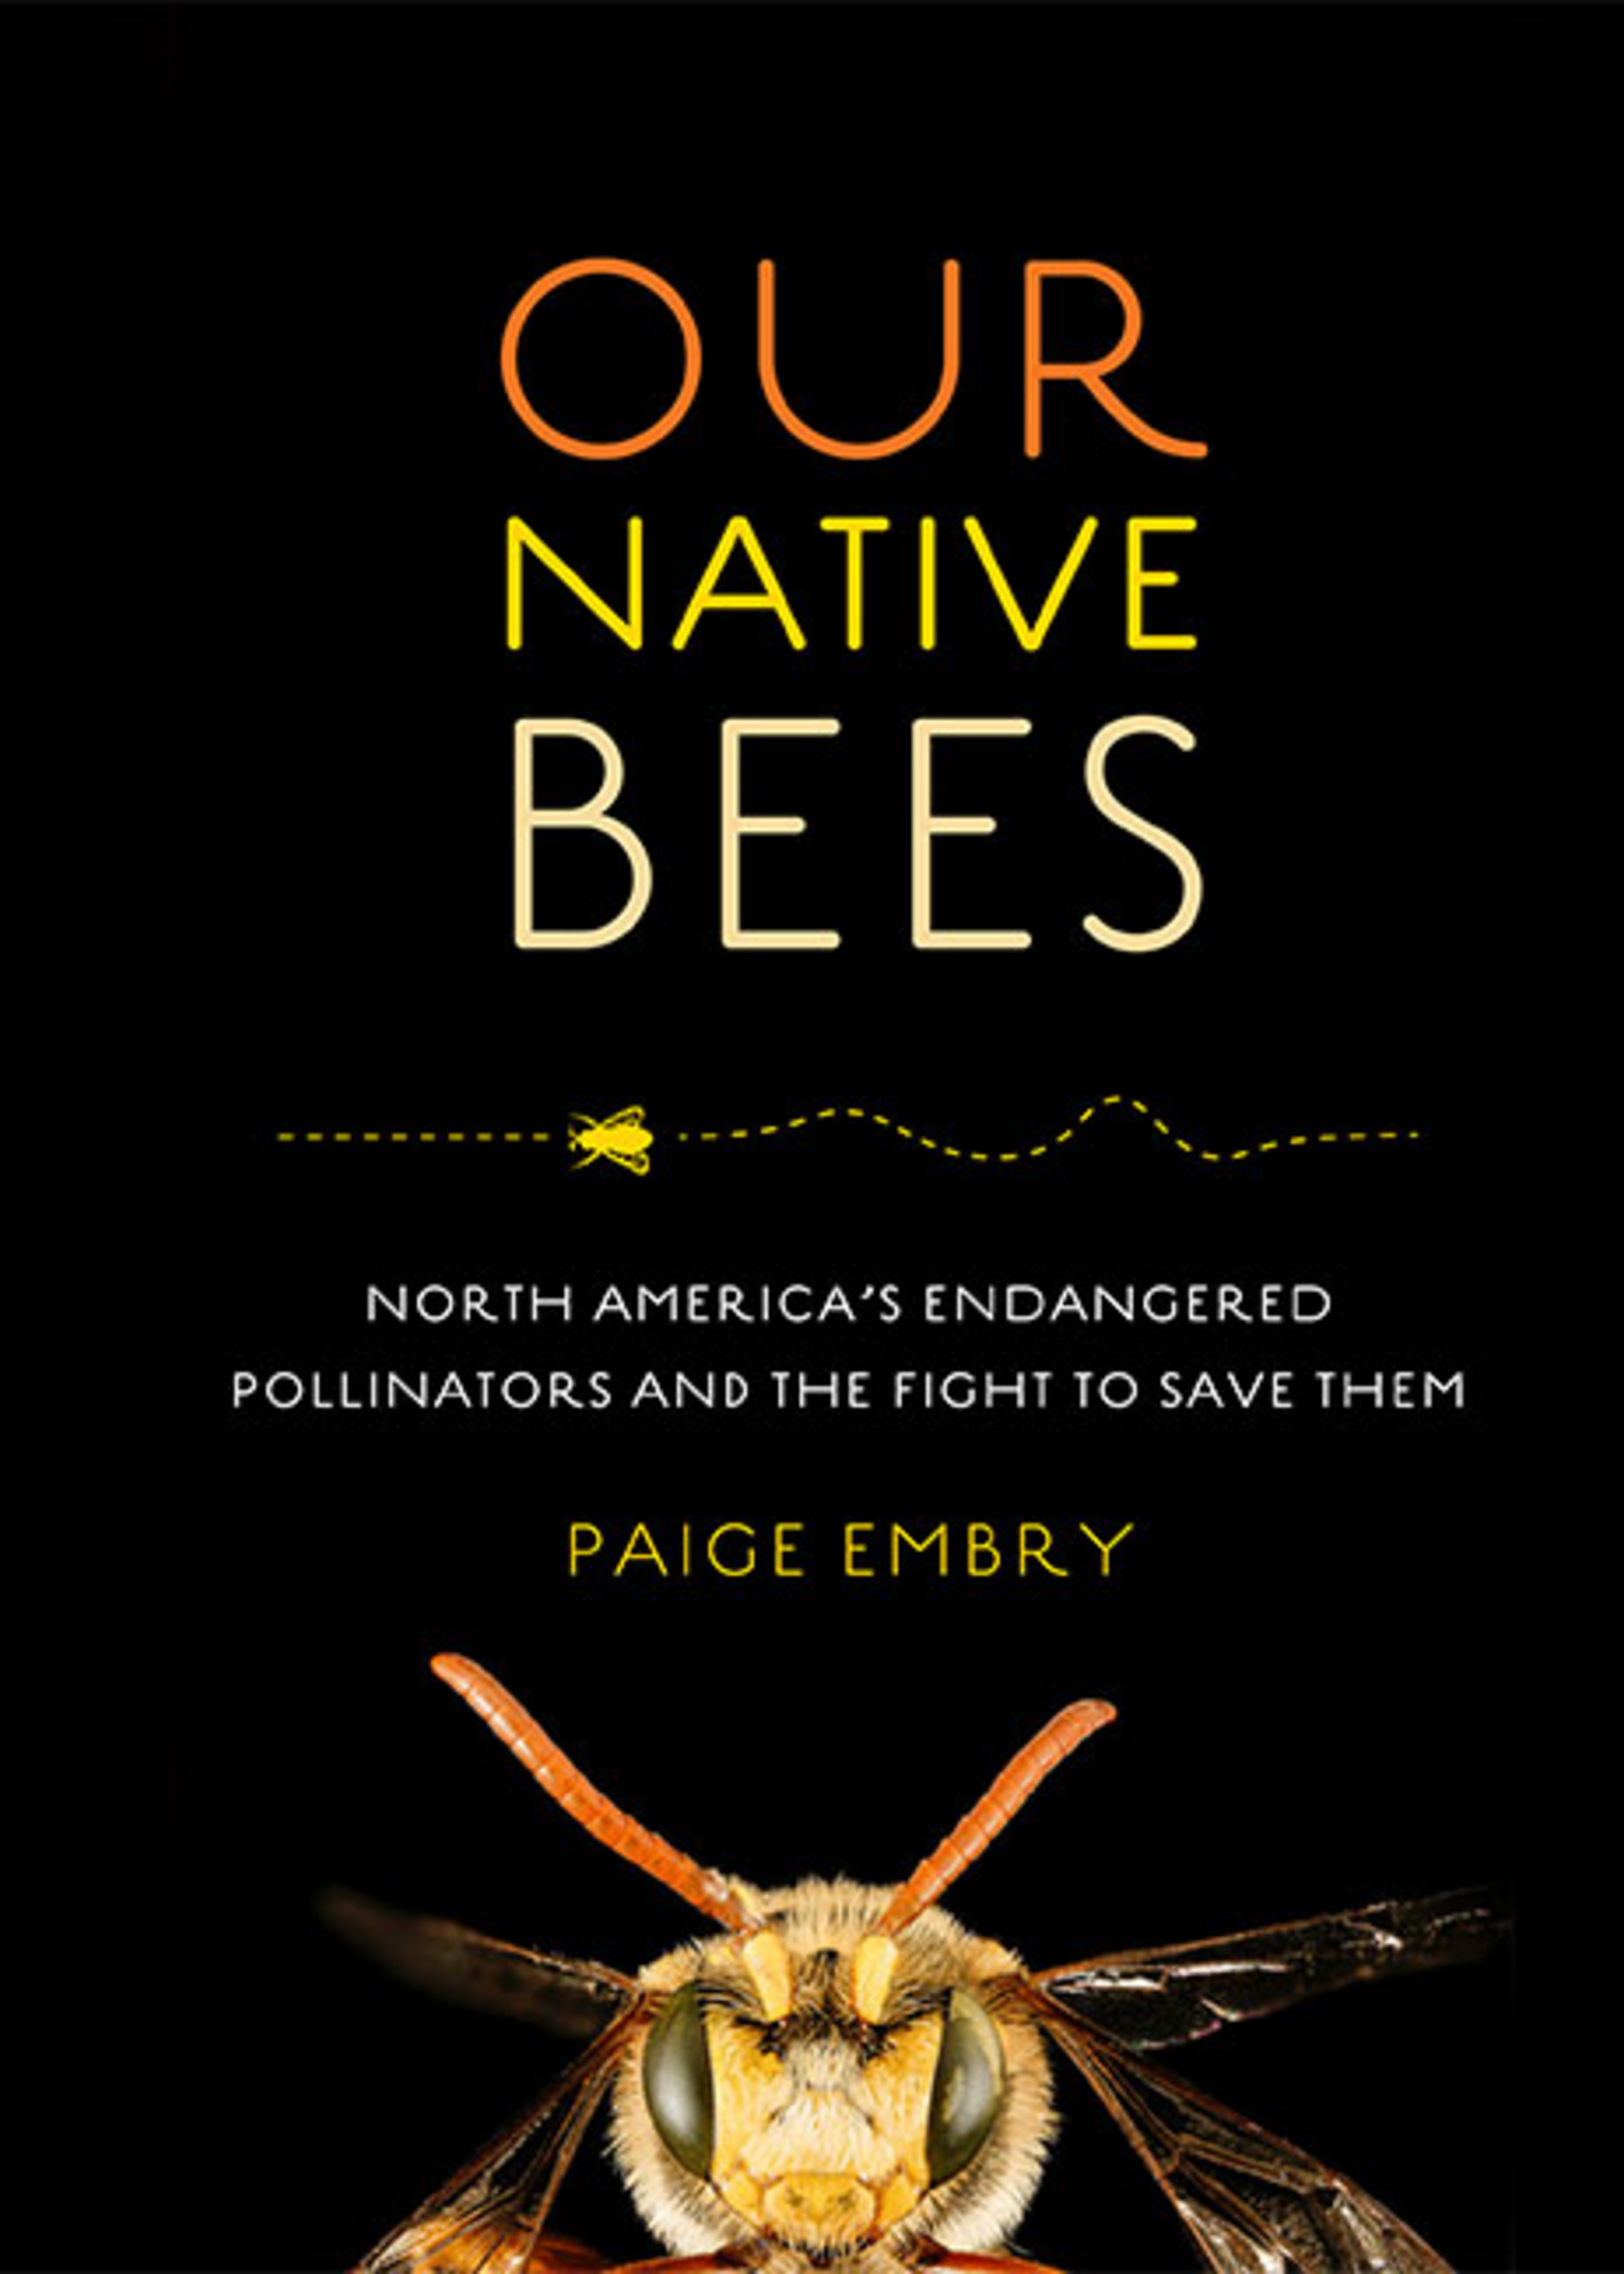 Bees Our Native Bees - Paige Embry